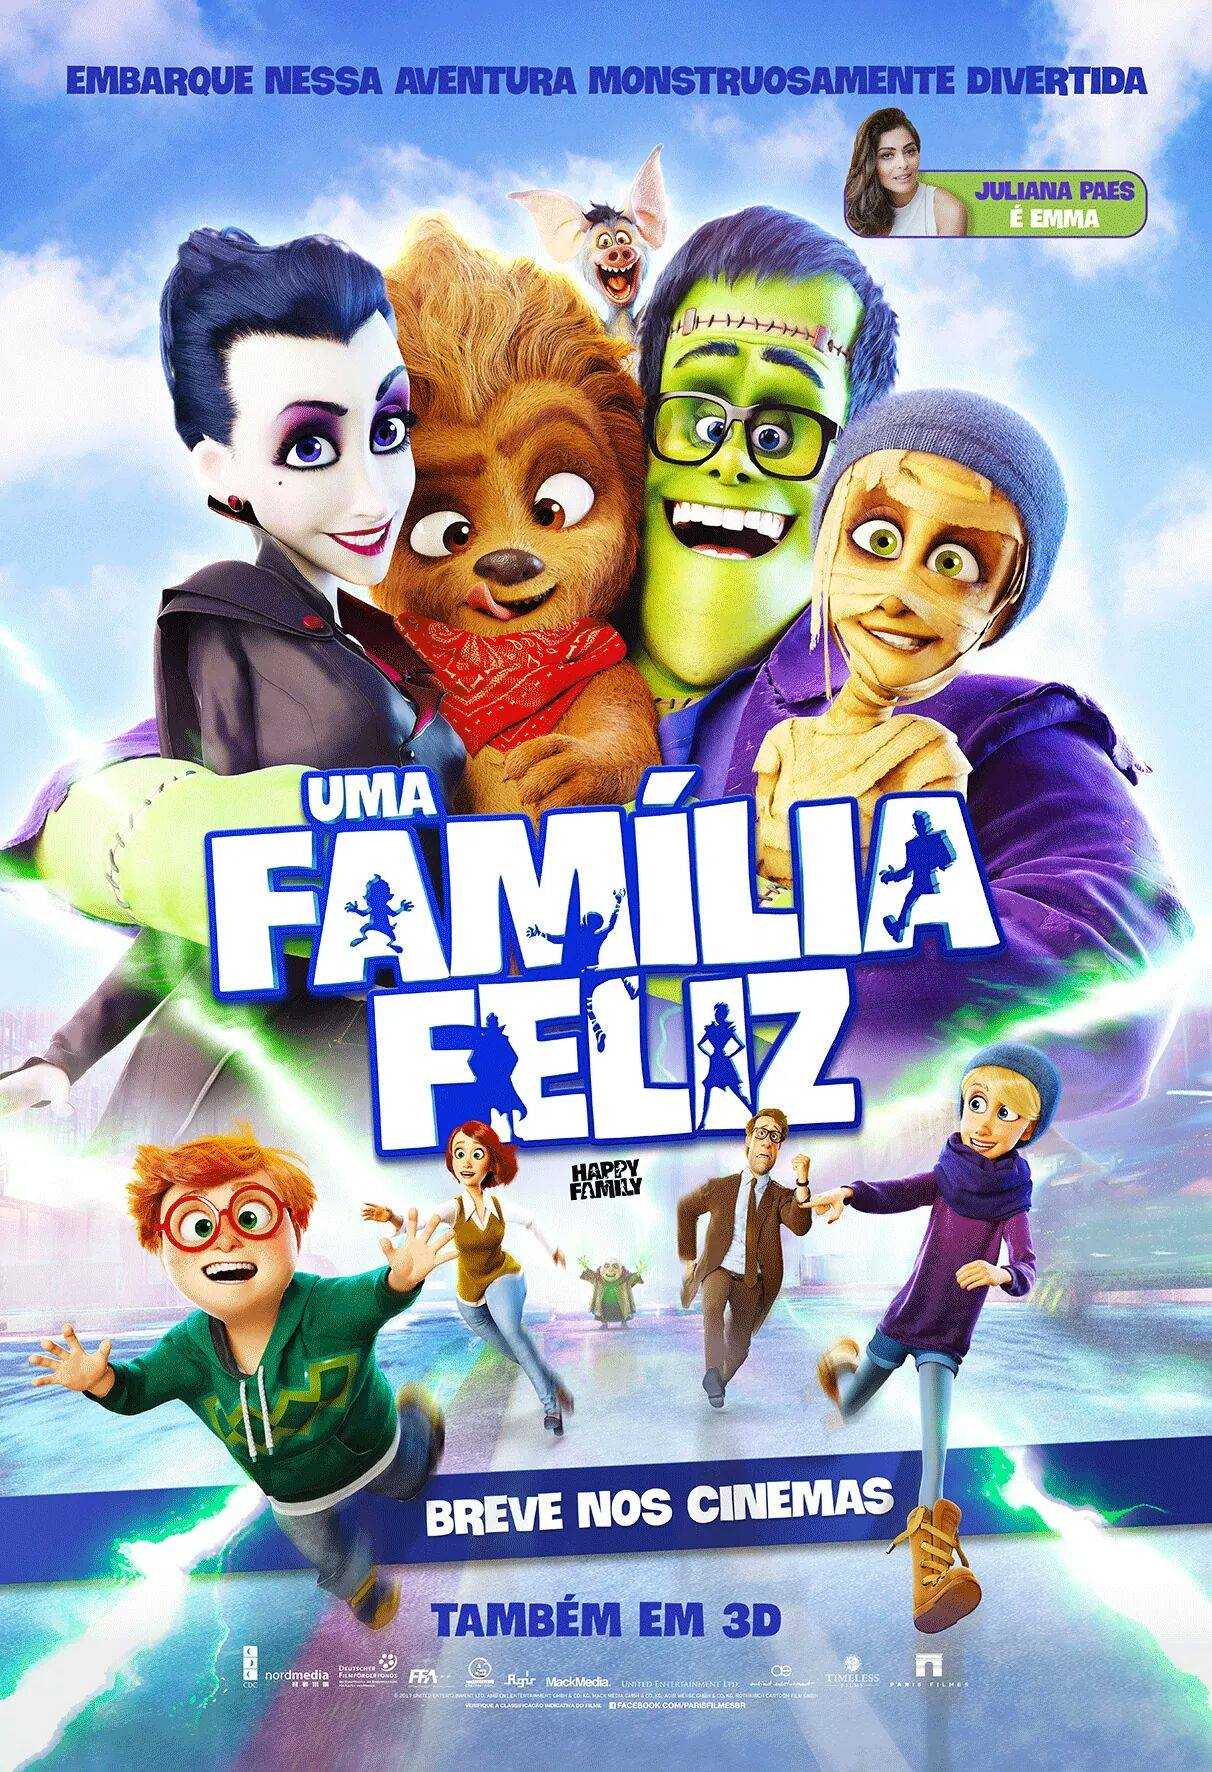 All Family Movies 2017 happy family movie poster : teaser trailer